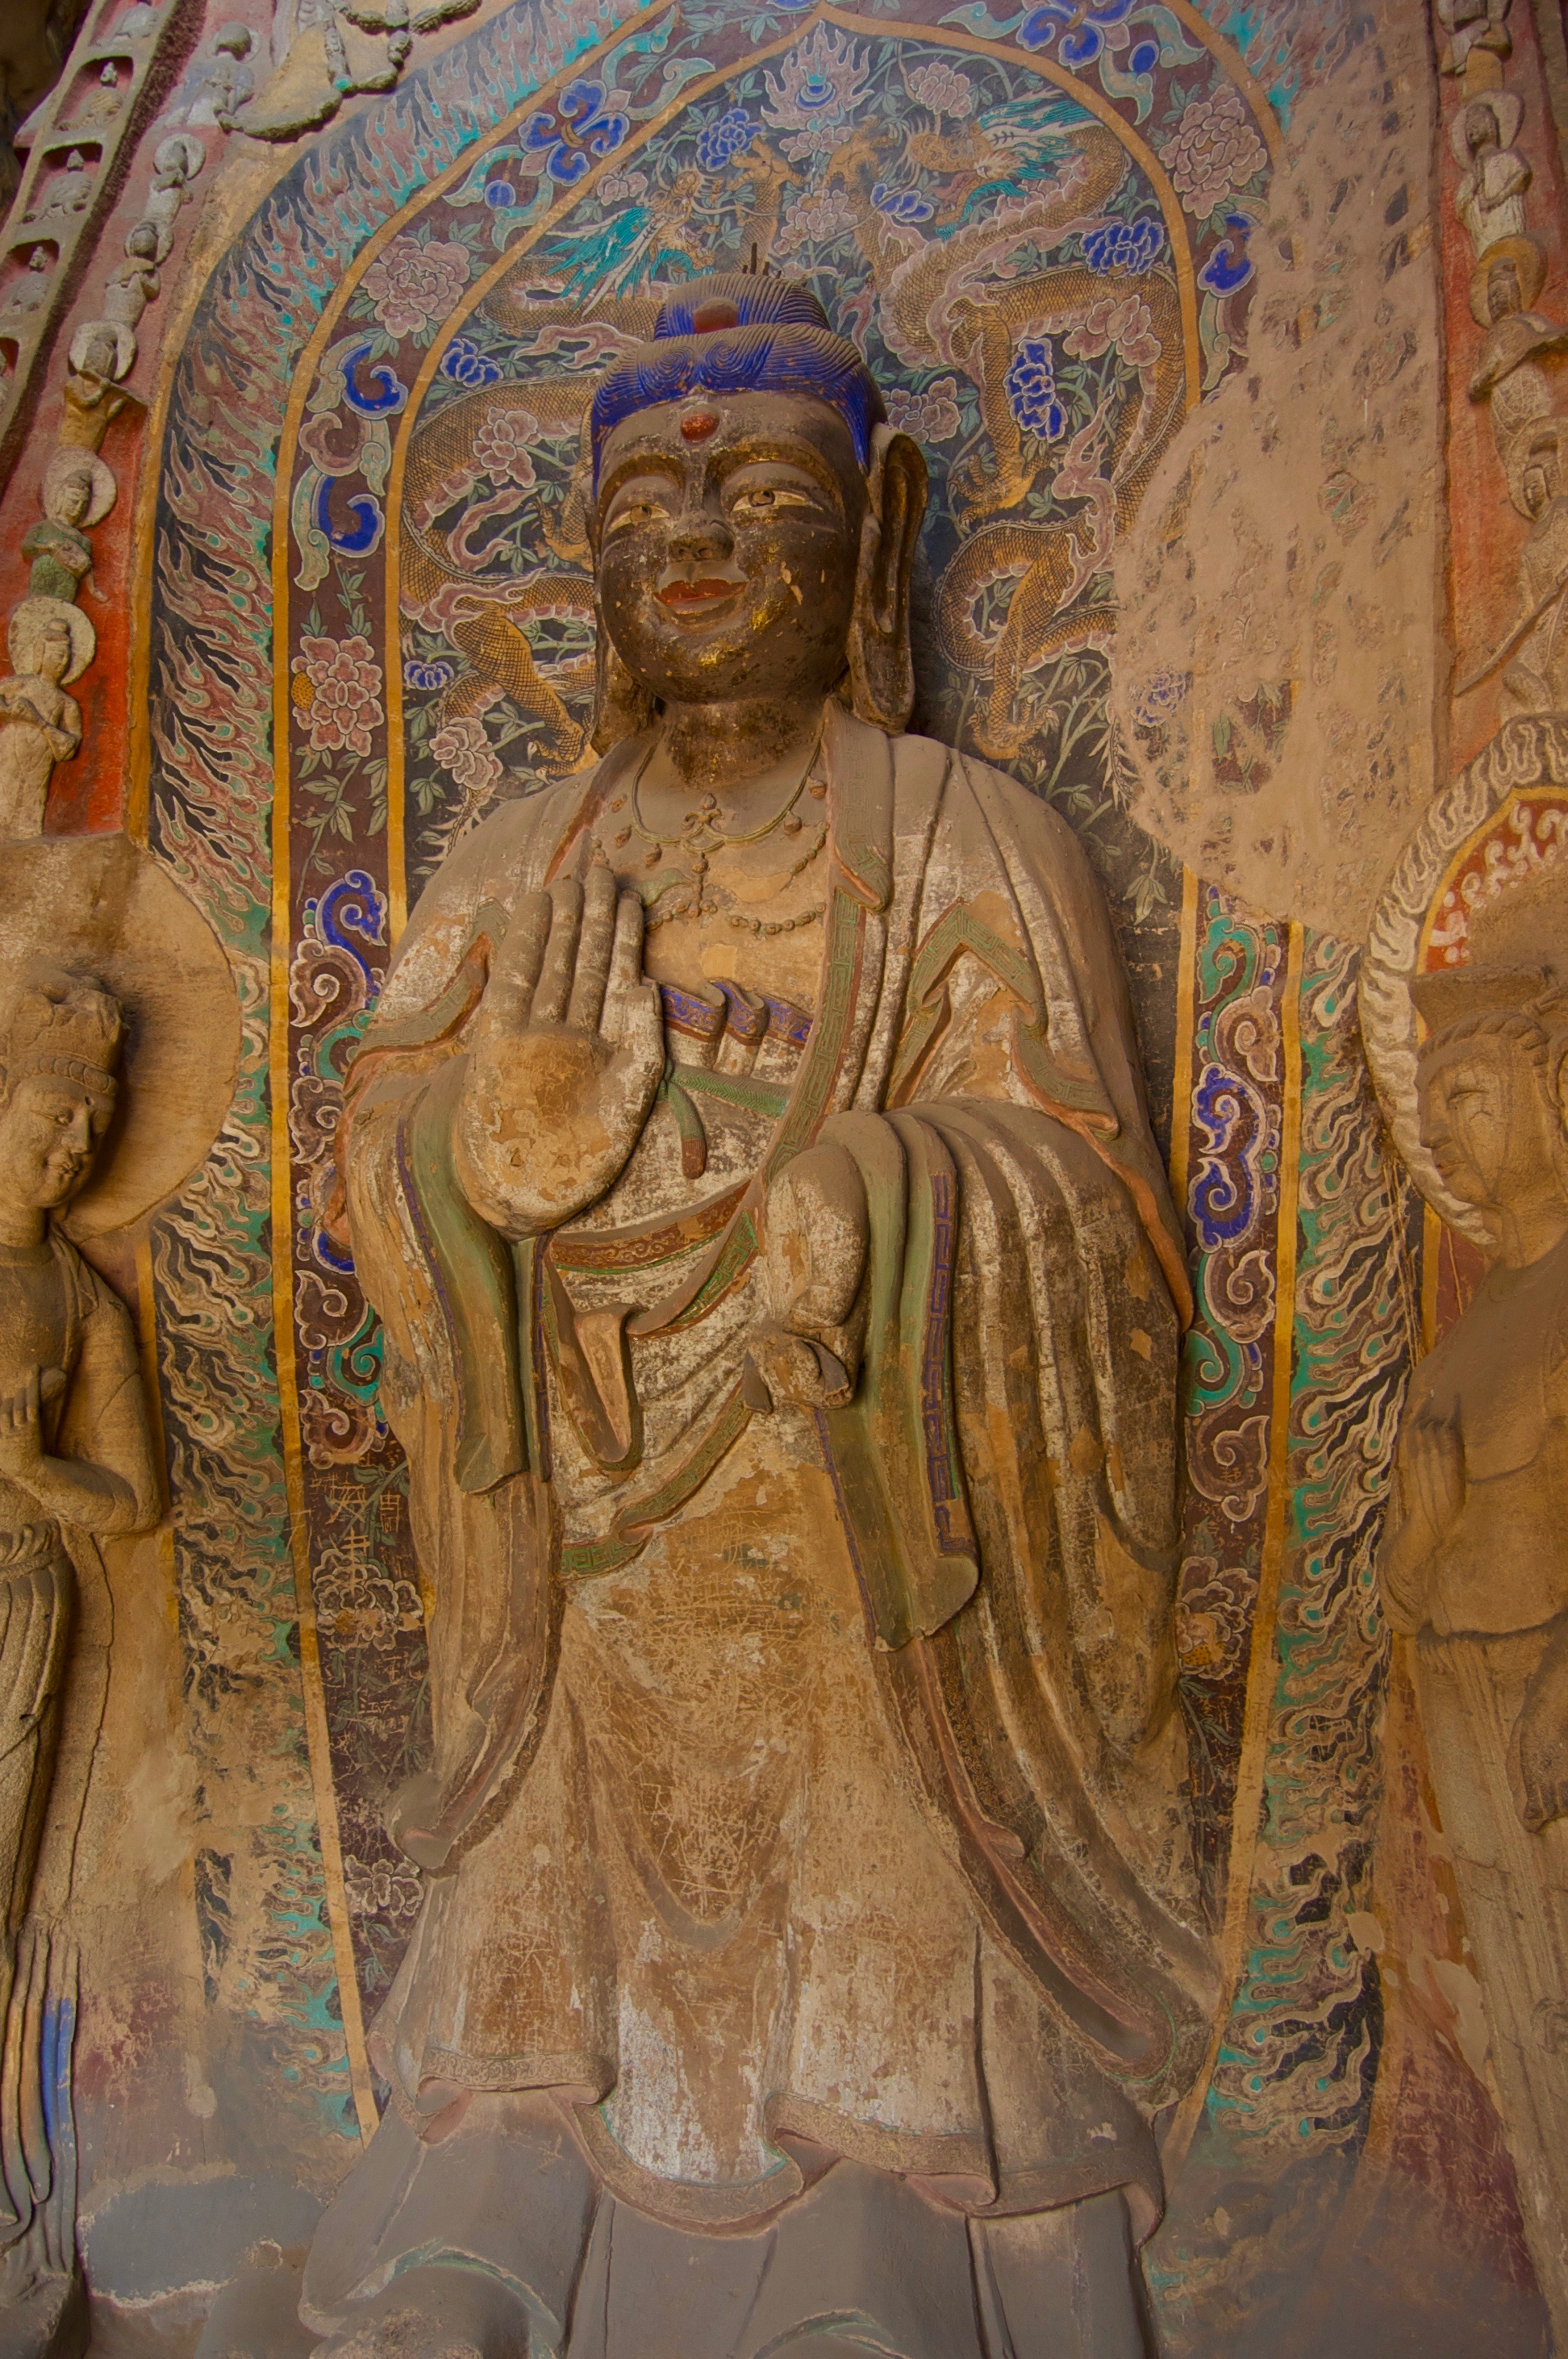 A Boddhisattva offers his blessings at a cave entrance in the Yungang Grottoes (Datong, Shanxi)